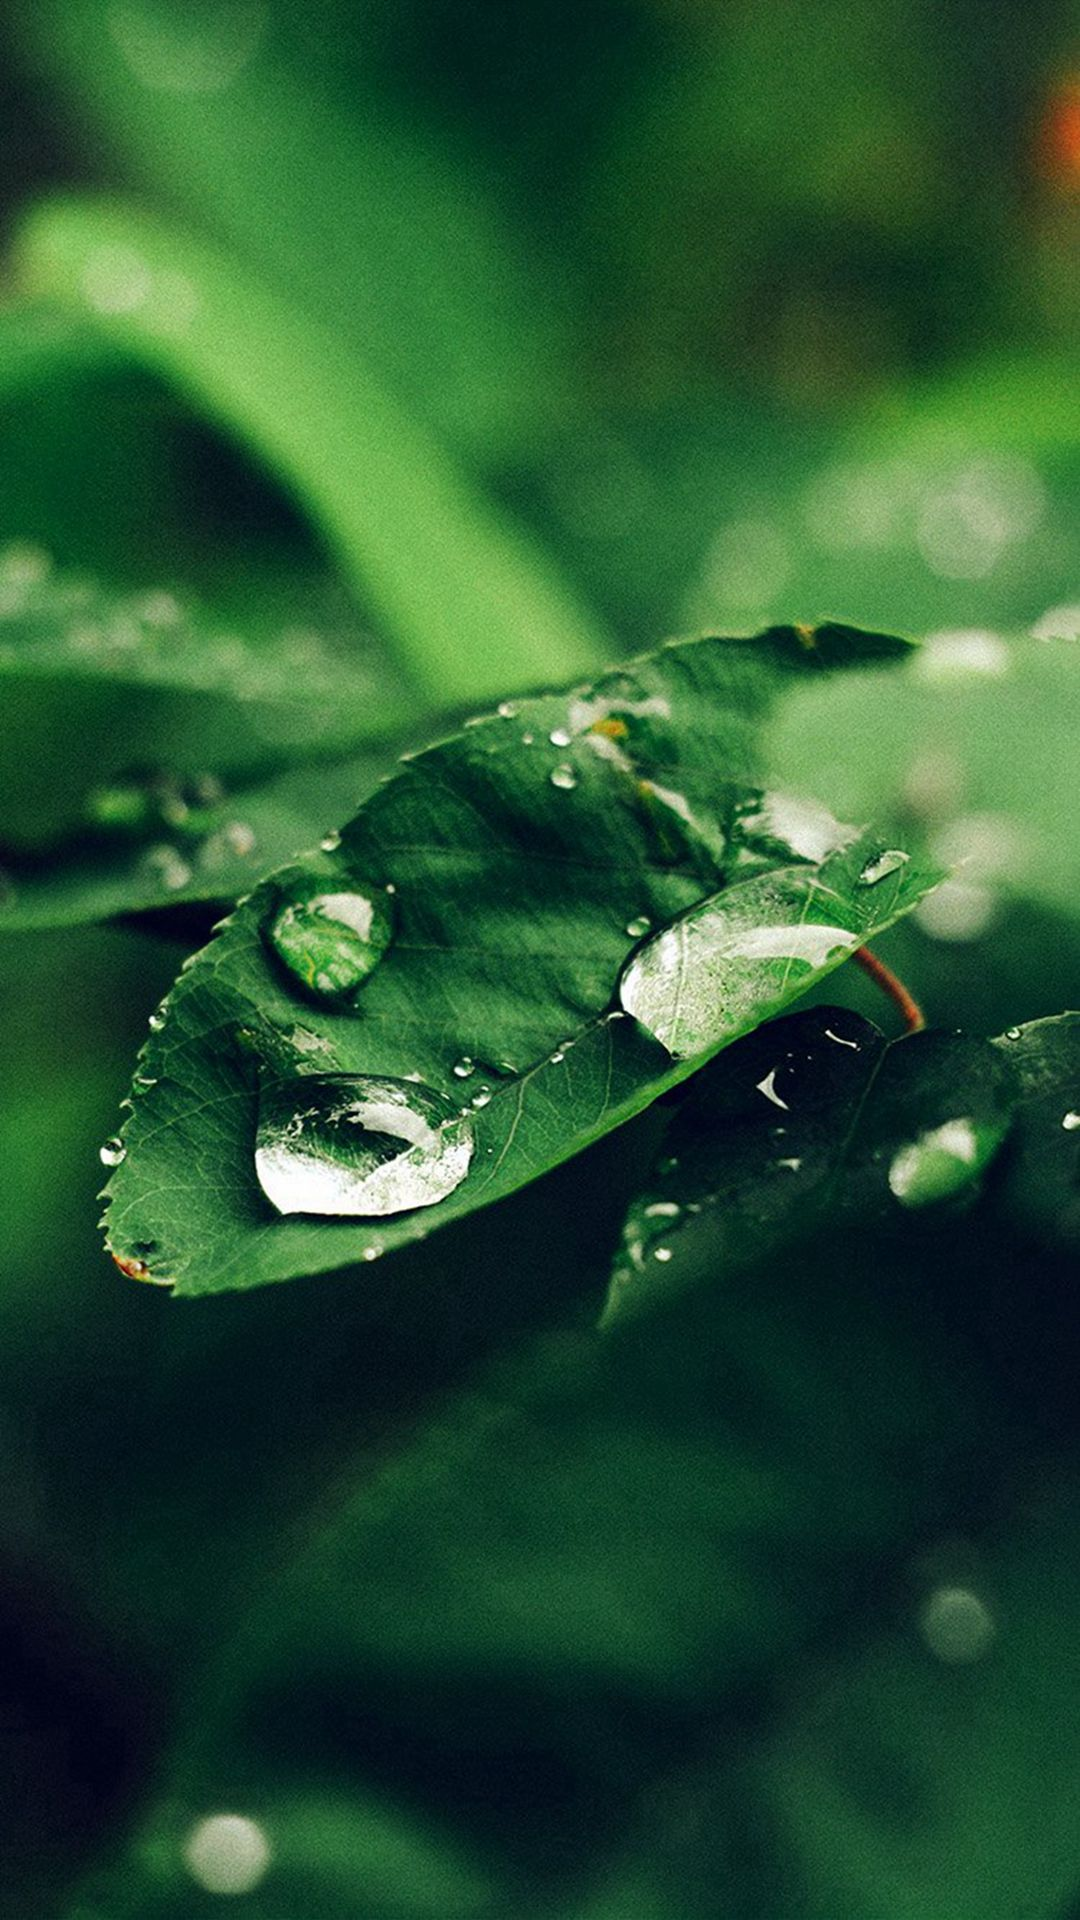 Leaf Rain Green Nature Forest Blue Iphone 6 Wallpaper Green Nature Flower Iphone Wallpaper Best Iphone Wallpapers